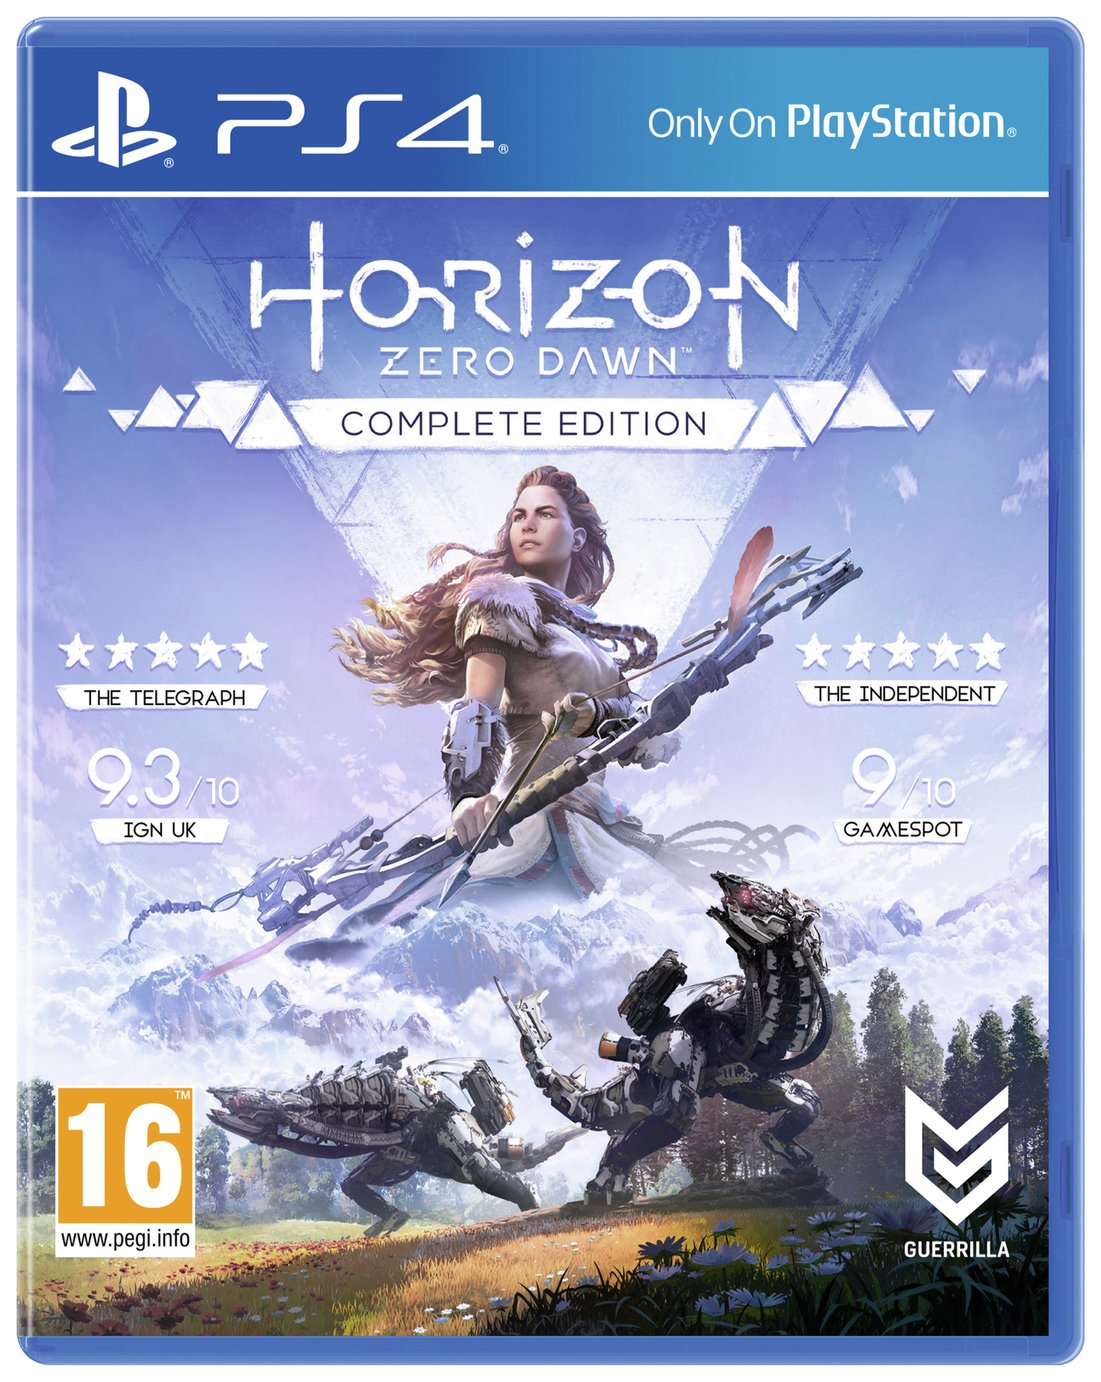 Horizon Zero Dawn: Complete Edition PS4 Game from PlayStation